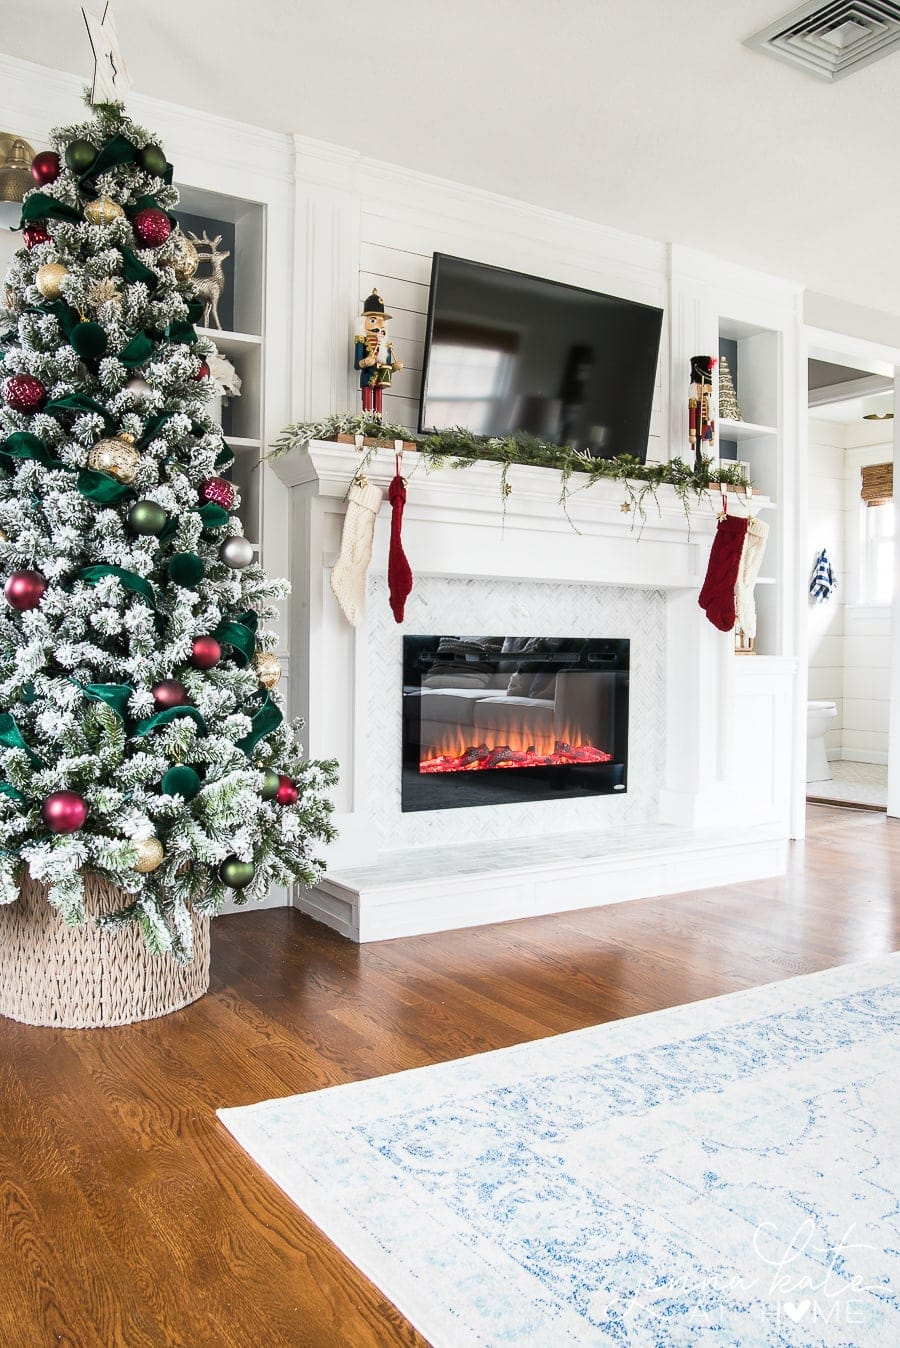 Fireplace surround with electric fireplace